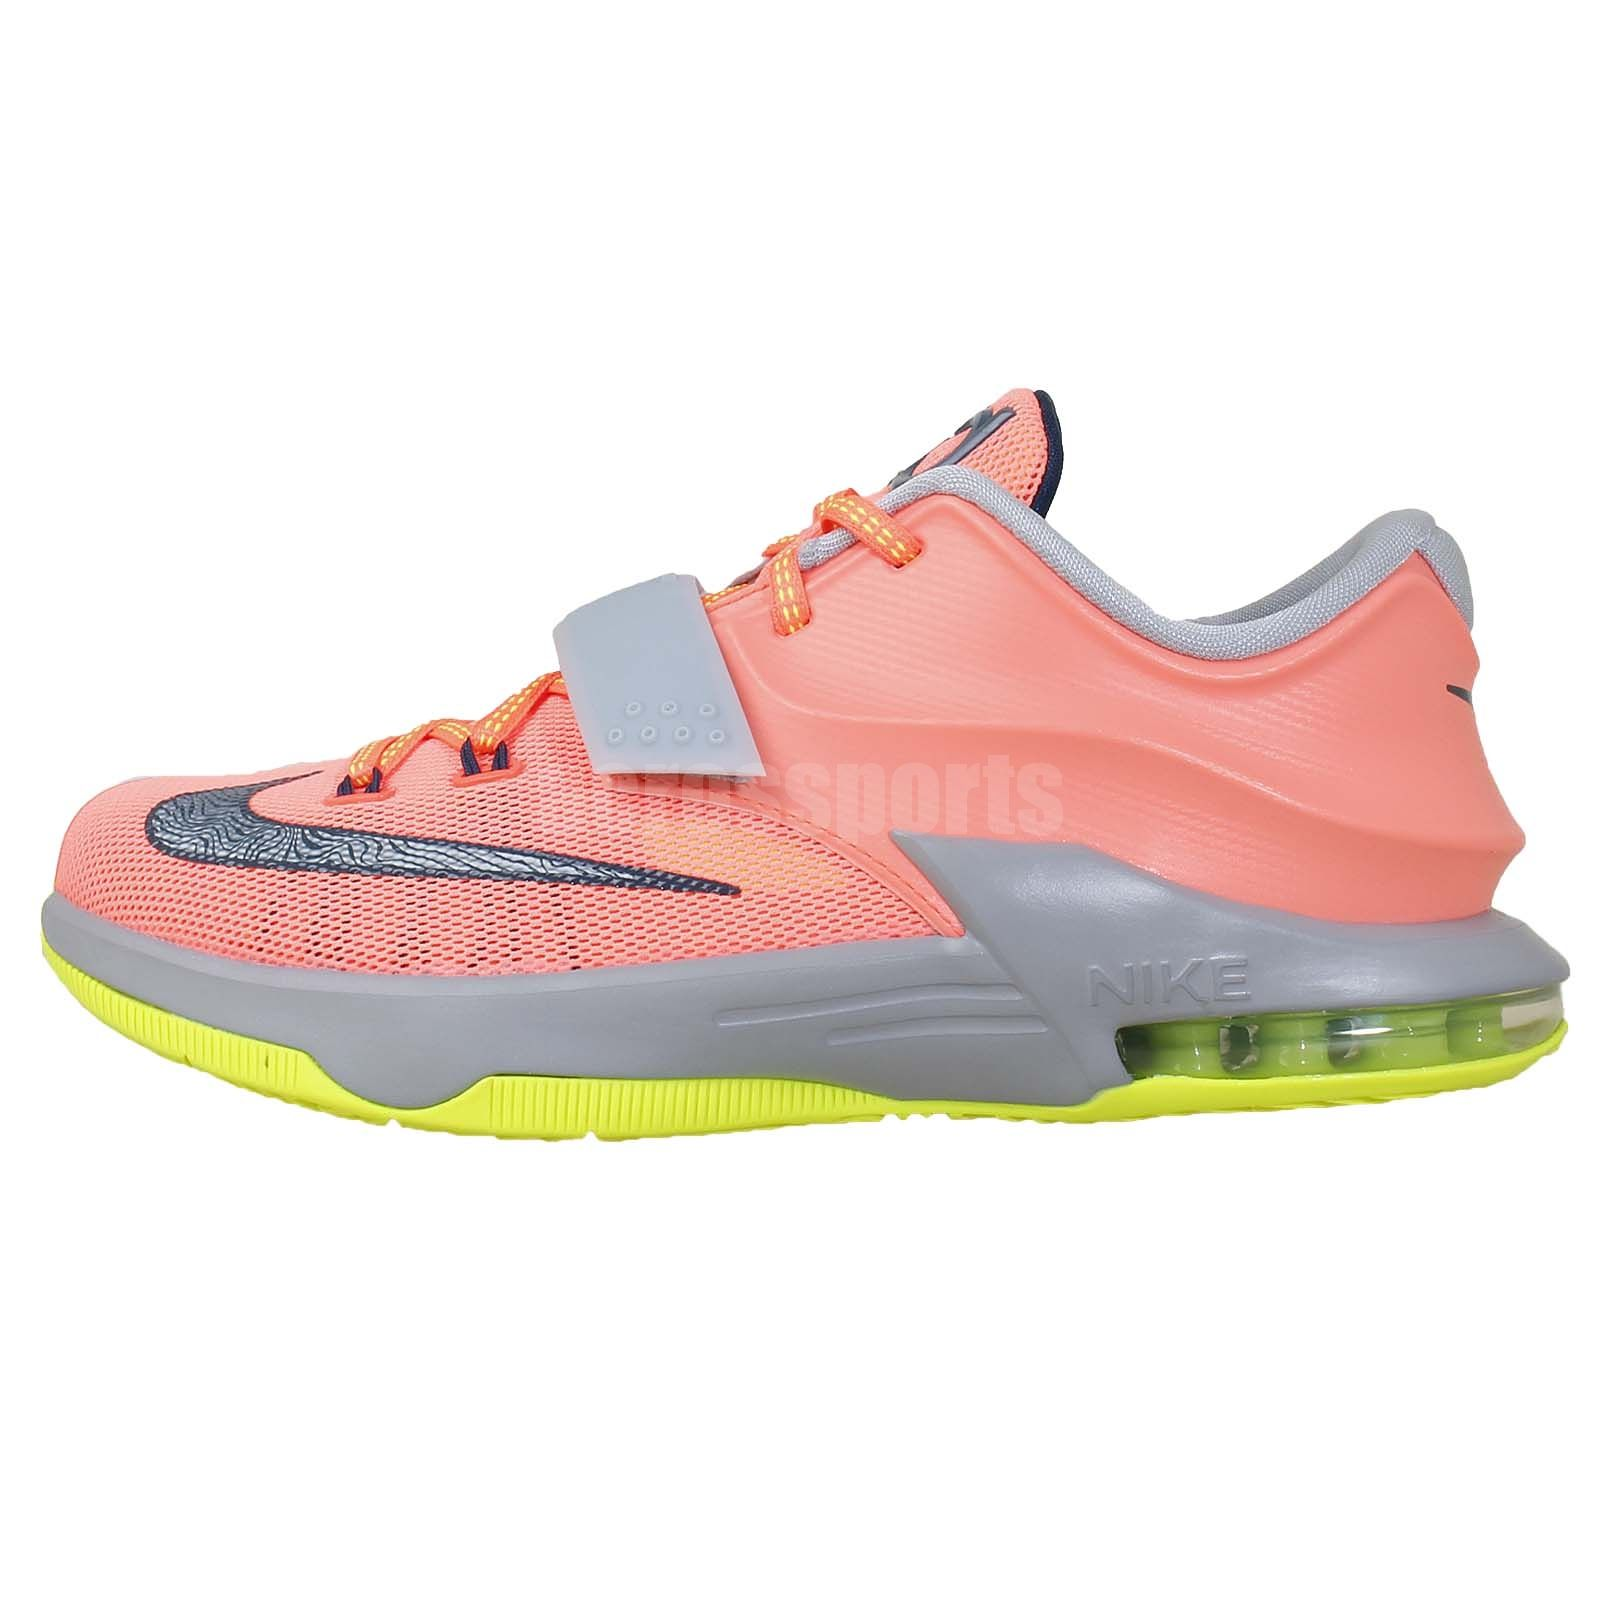 pretty nice 81e20 fca59 Nike KD VII 7 GS Boys Girls Youth Womens Kevin Durant 35 Basketball Shoes  Pick 1